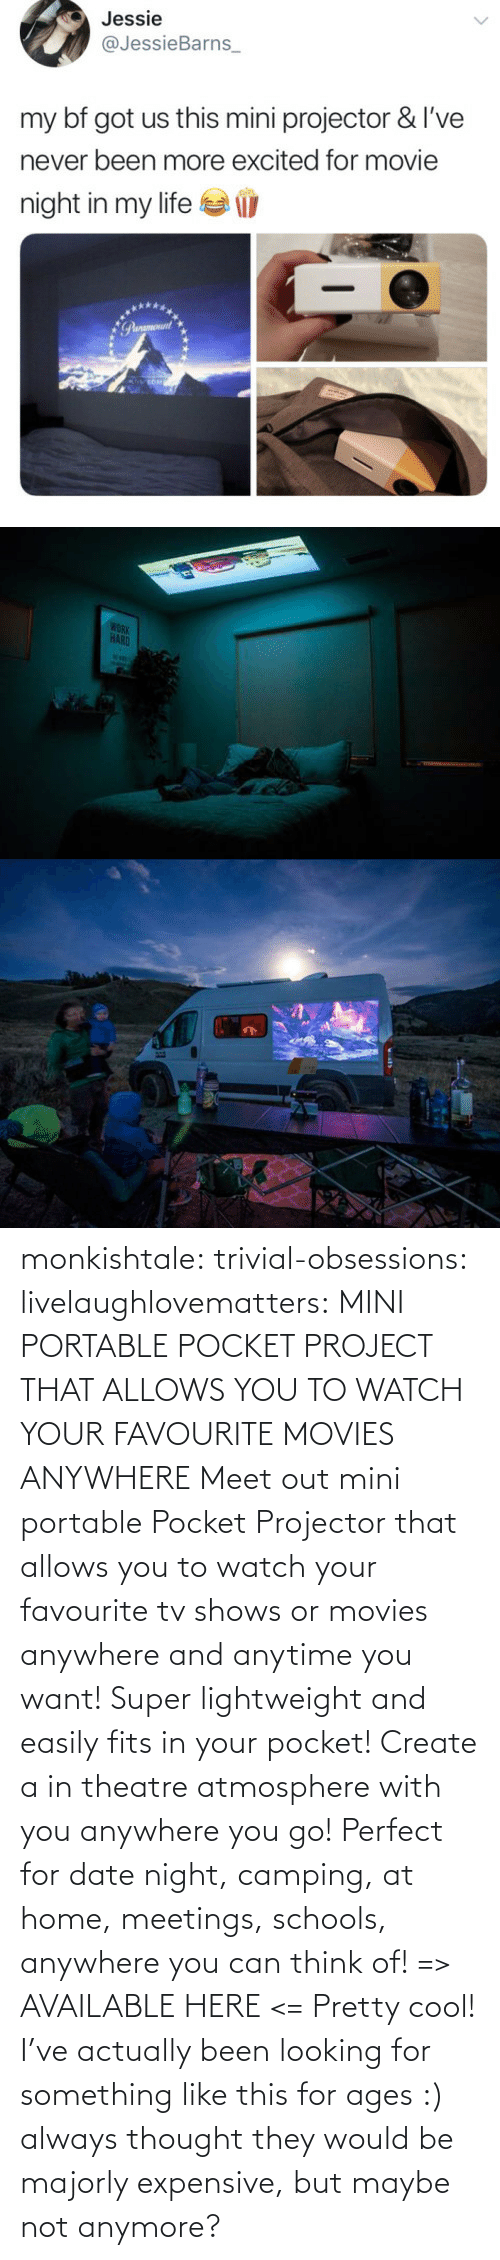 Easily: monkishtale: trivial-obsessions:   livelaughlovematters:   MINI PORTABLE POCKET PROJECT THAT ALLOWS YOU TO WATCH YOUR FAVOURITE MOVIES ANYWHERE Meet out mini portable Pocket Projector that allows you to watch your favourite tv shows or movies anywhere and anytime you want! Super lightweight and easily fits in your pocket! Create a in theatre atmosphere with you anywhere you go! Perfect for date night, camping, at home, meetings, schools, anywhere you can think of! => AVAILABLE HERE <=    Pretty cool!    I've actually been looking for something like this for ages :) always thought they would be majorly expensive, but maybe not anymore?